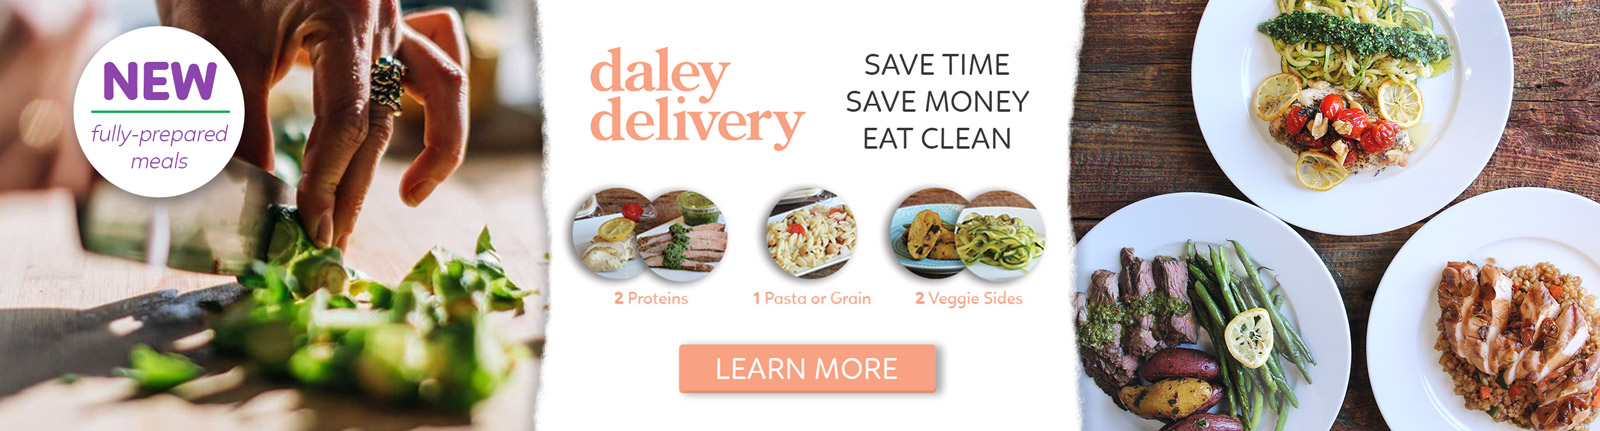 Daley Delivery - 6 Servings